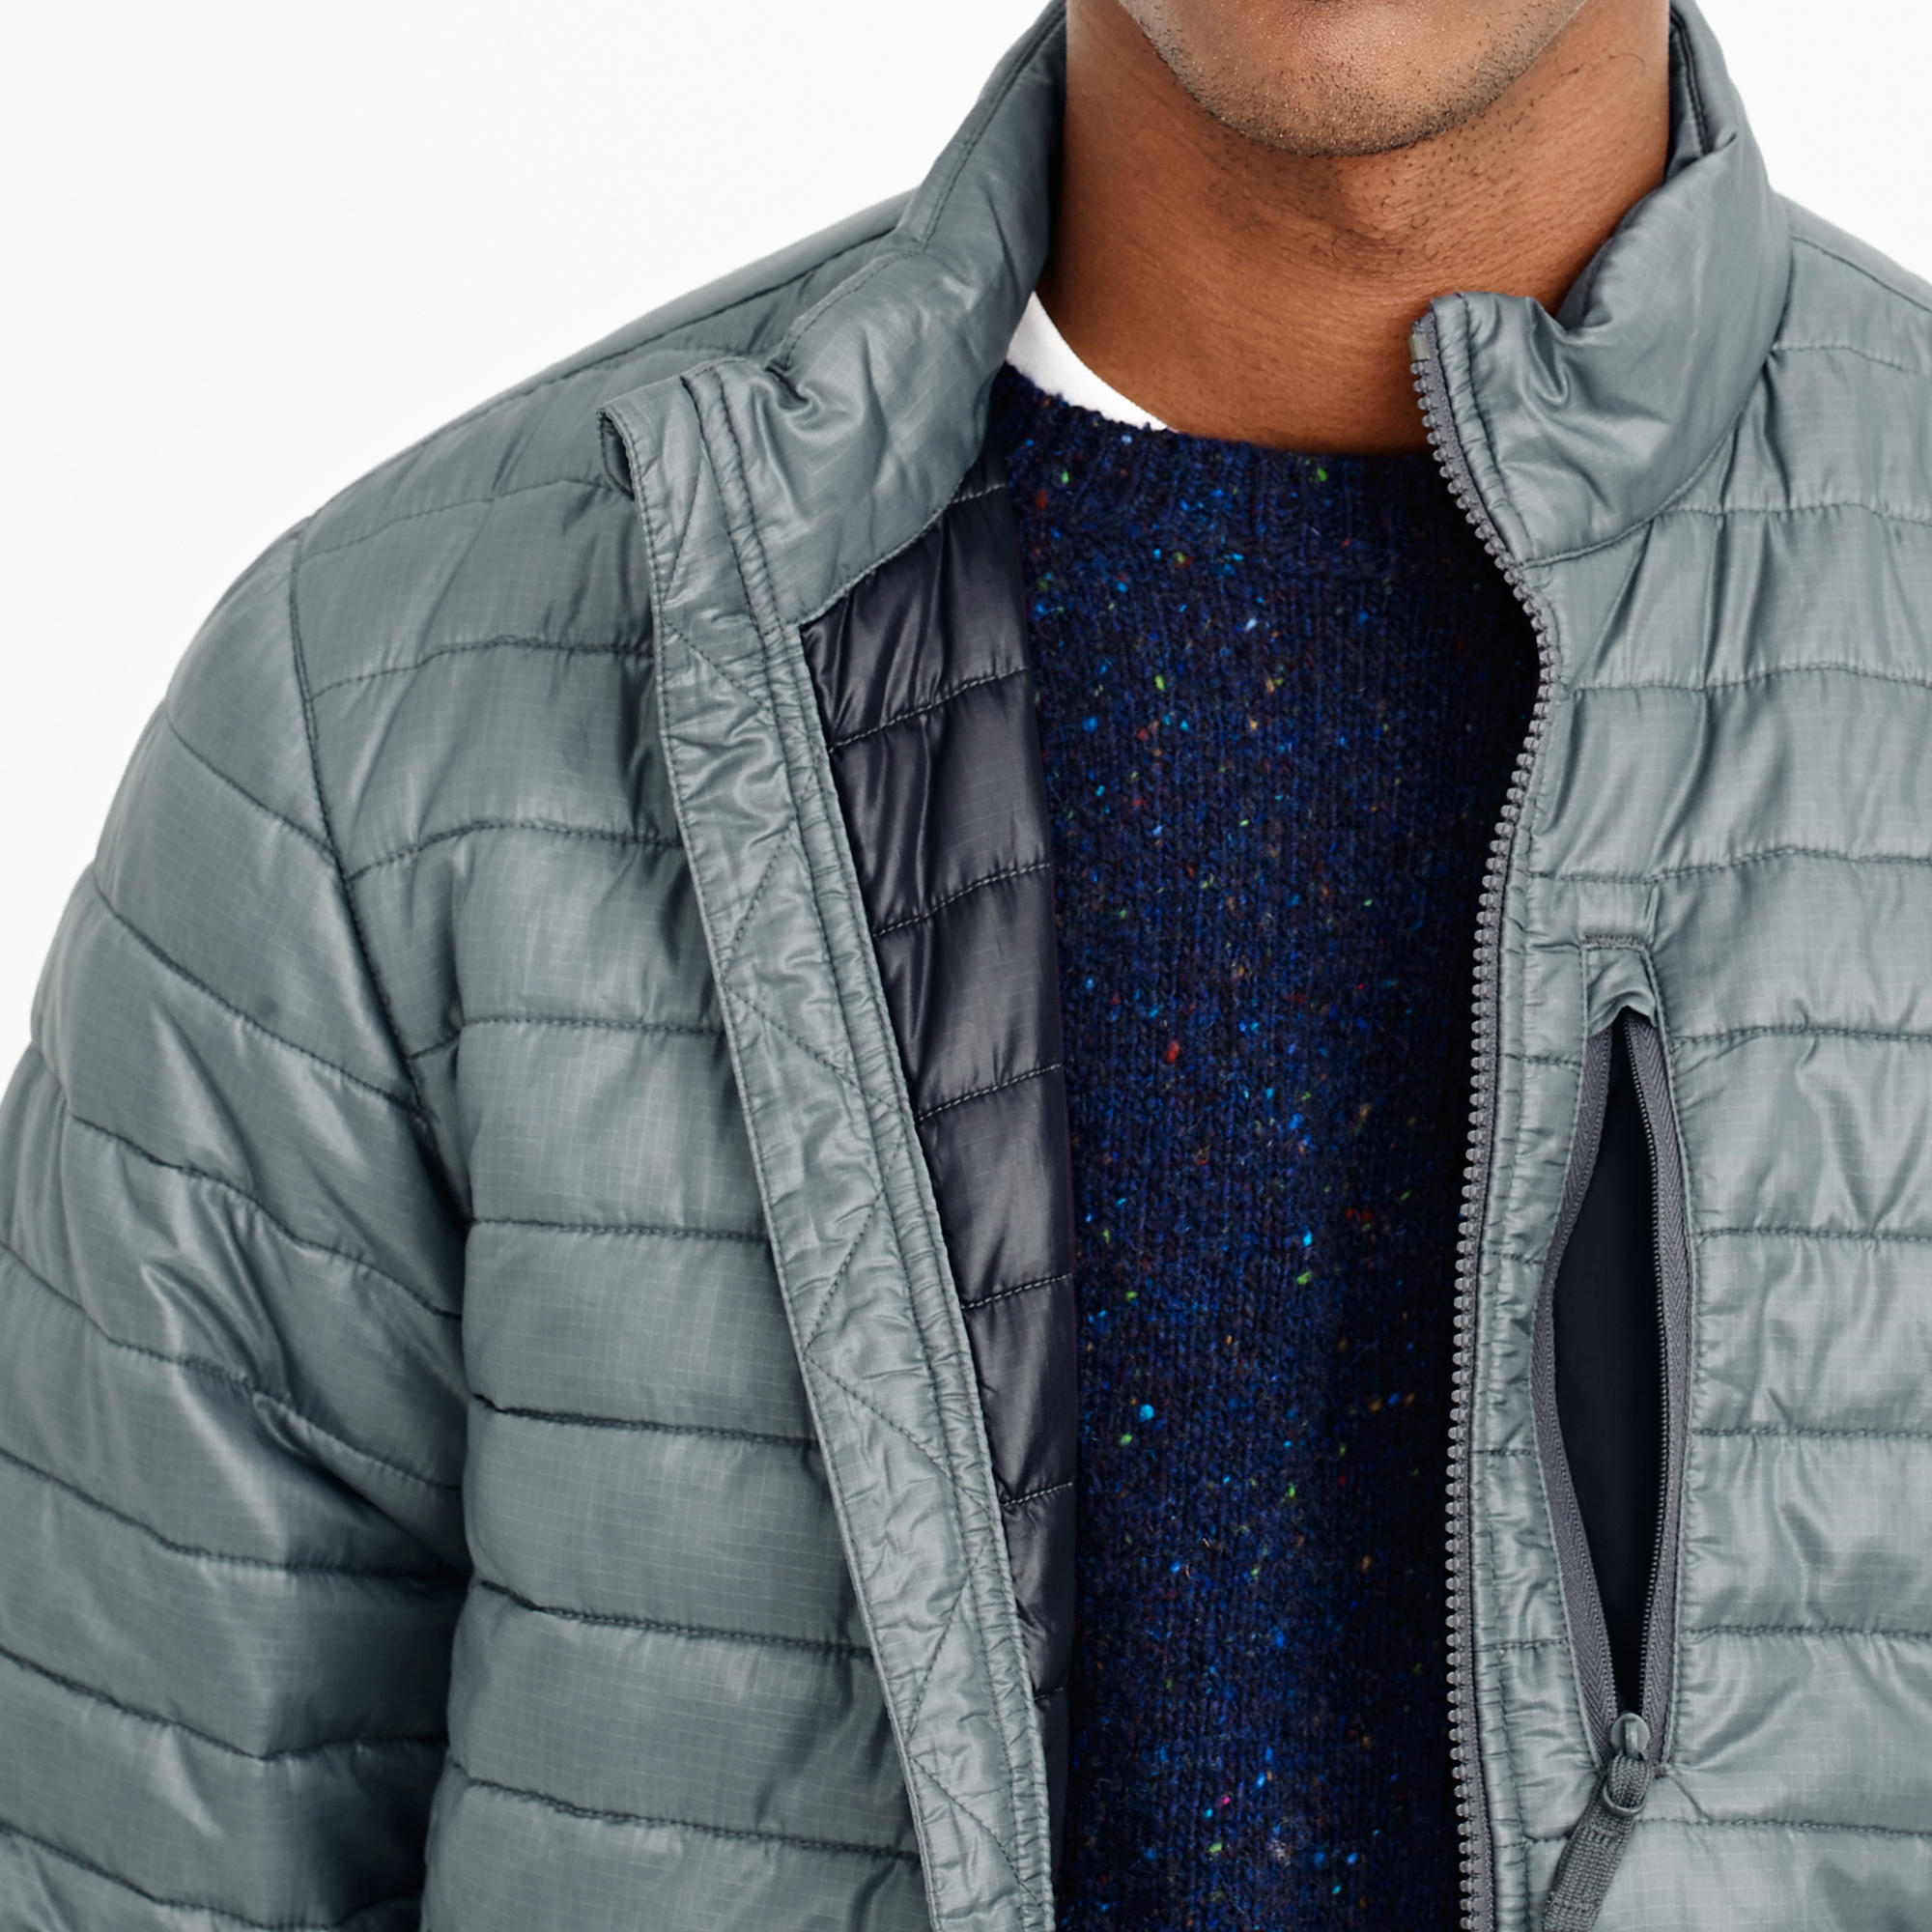 Super cozy Primaloft jacket